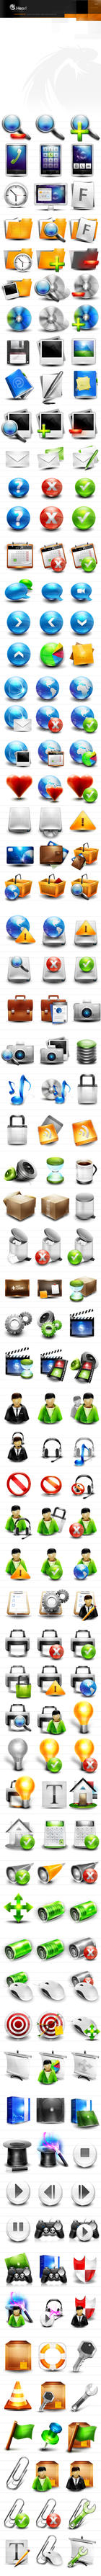 iconset0001 - 4500 icons for 99 $ only by webdesigner1921